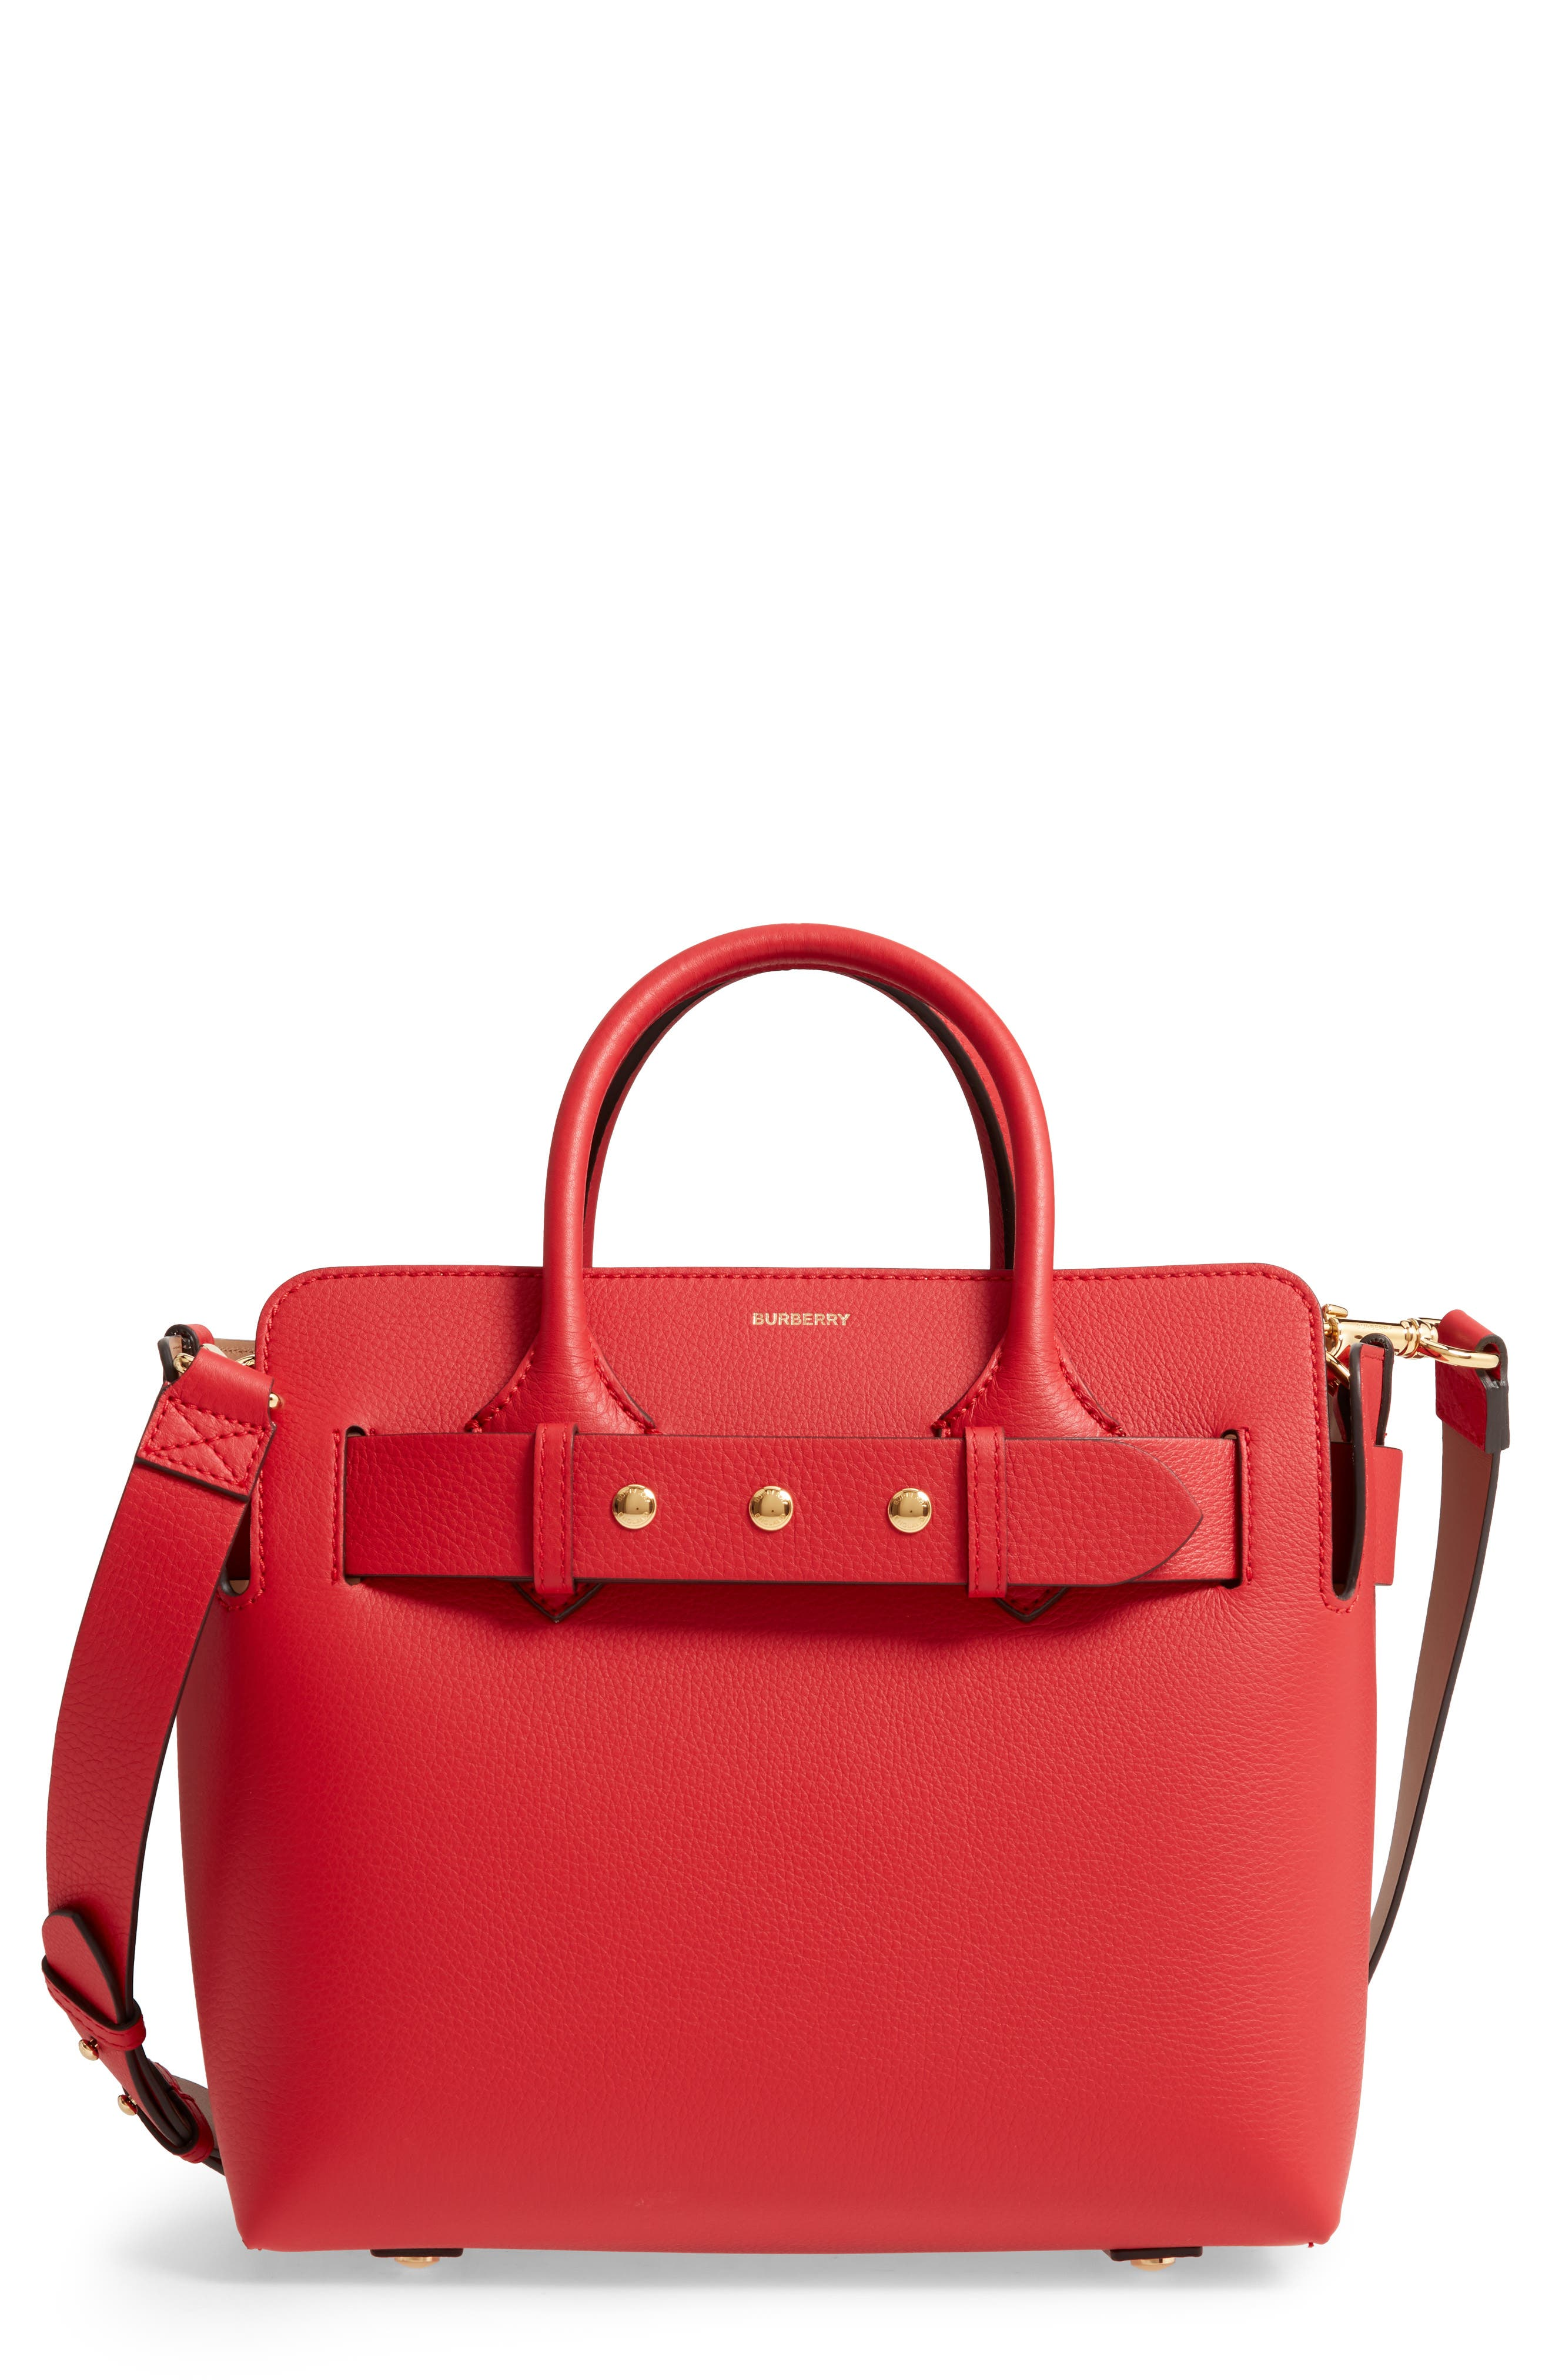 BURBERRY Small Belt Leather Satchel, Main, color, BRIGHT MILITARY RED